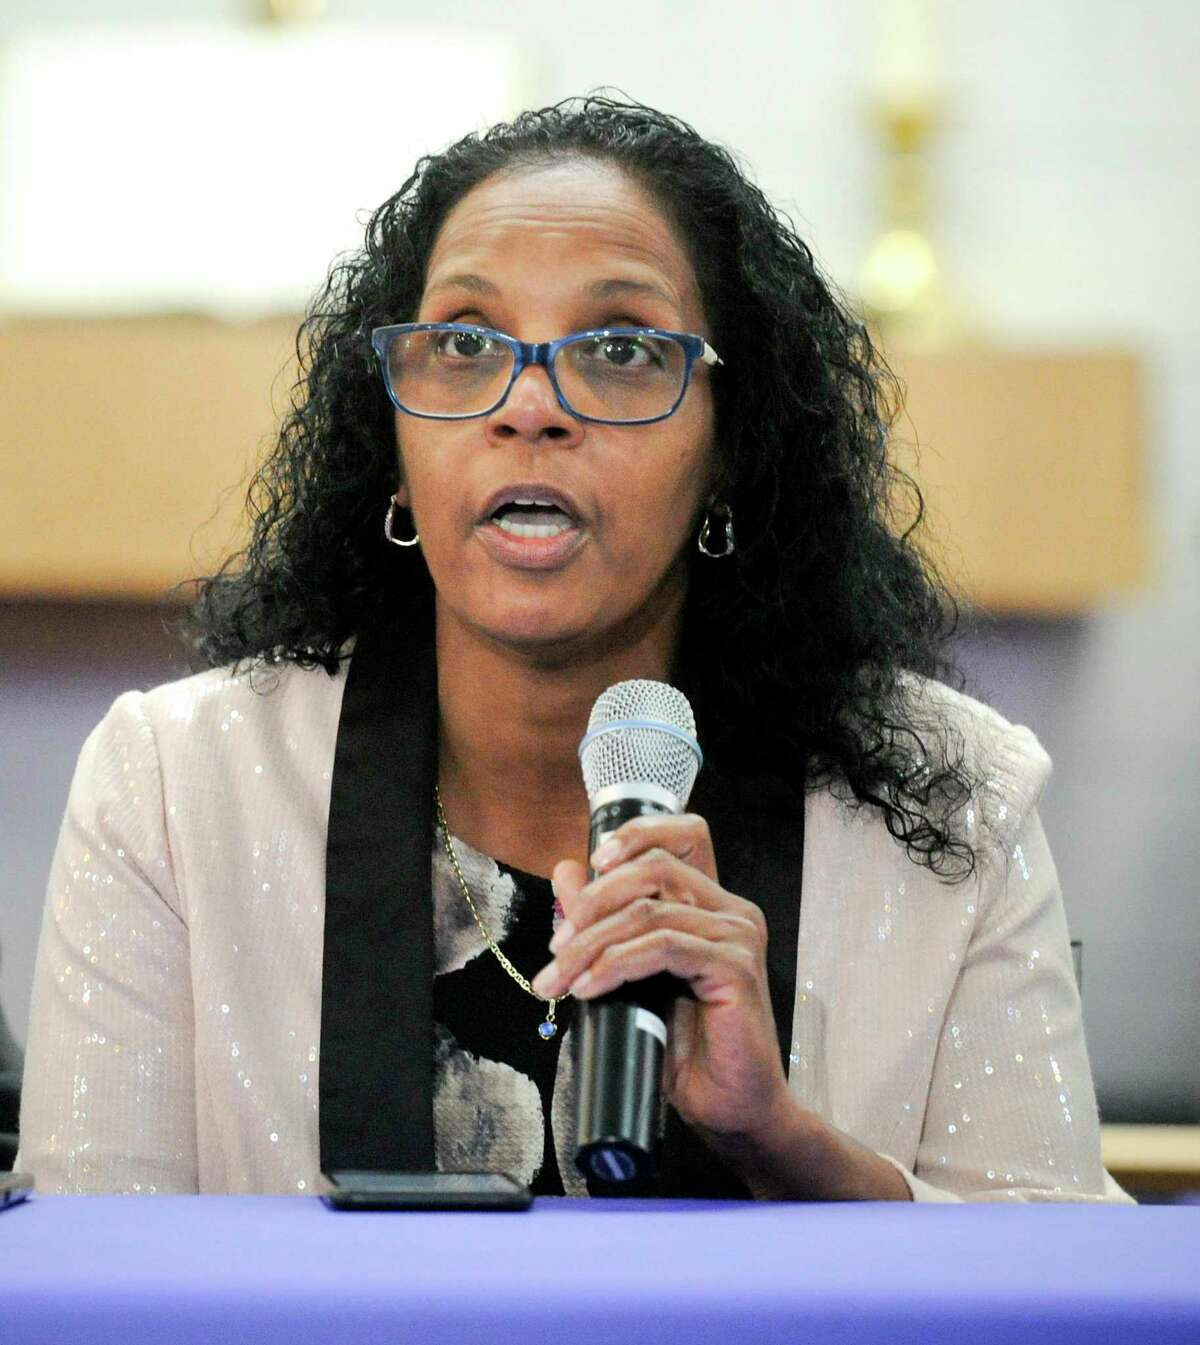 Valerie Jaddo, mother of Steven Barrier, reads a prepared statement during a press conference at Bethel AME Church in Stamford on Oct. 25, 2019, regarding the incident with her son and the Stamford Police Department. Clergy, community leaders and the Stamford NAACP along with family members release of information into what happen.